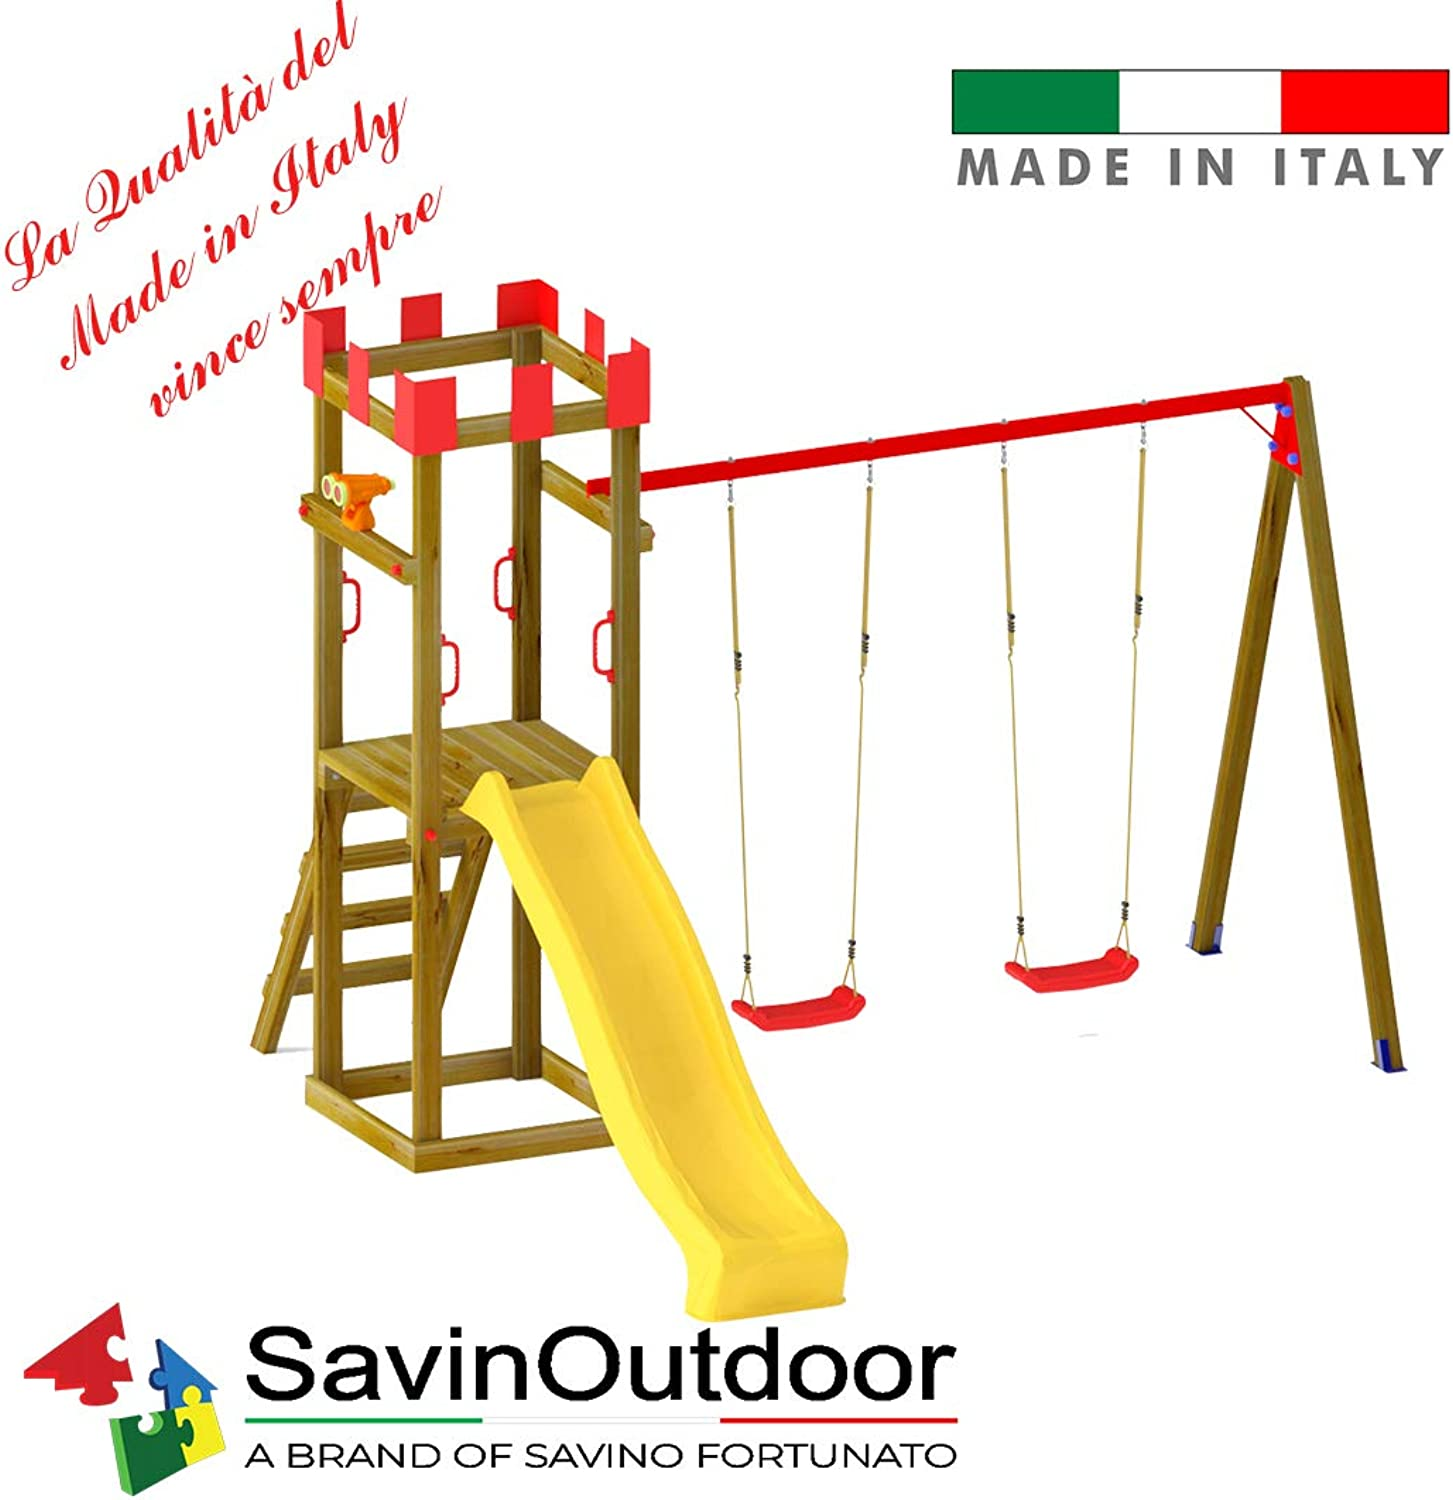 SavinOutdoor Torre Sole Single mit Doppelschaukel